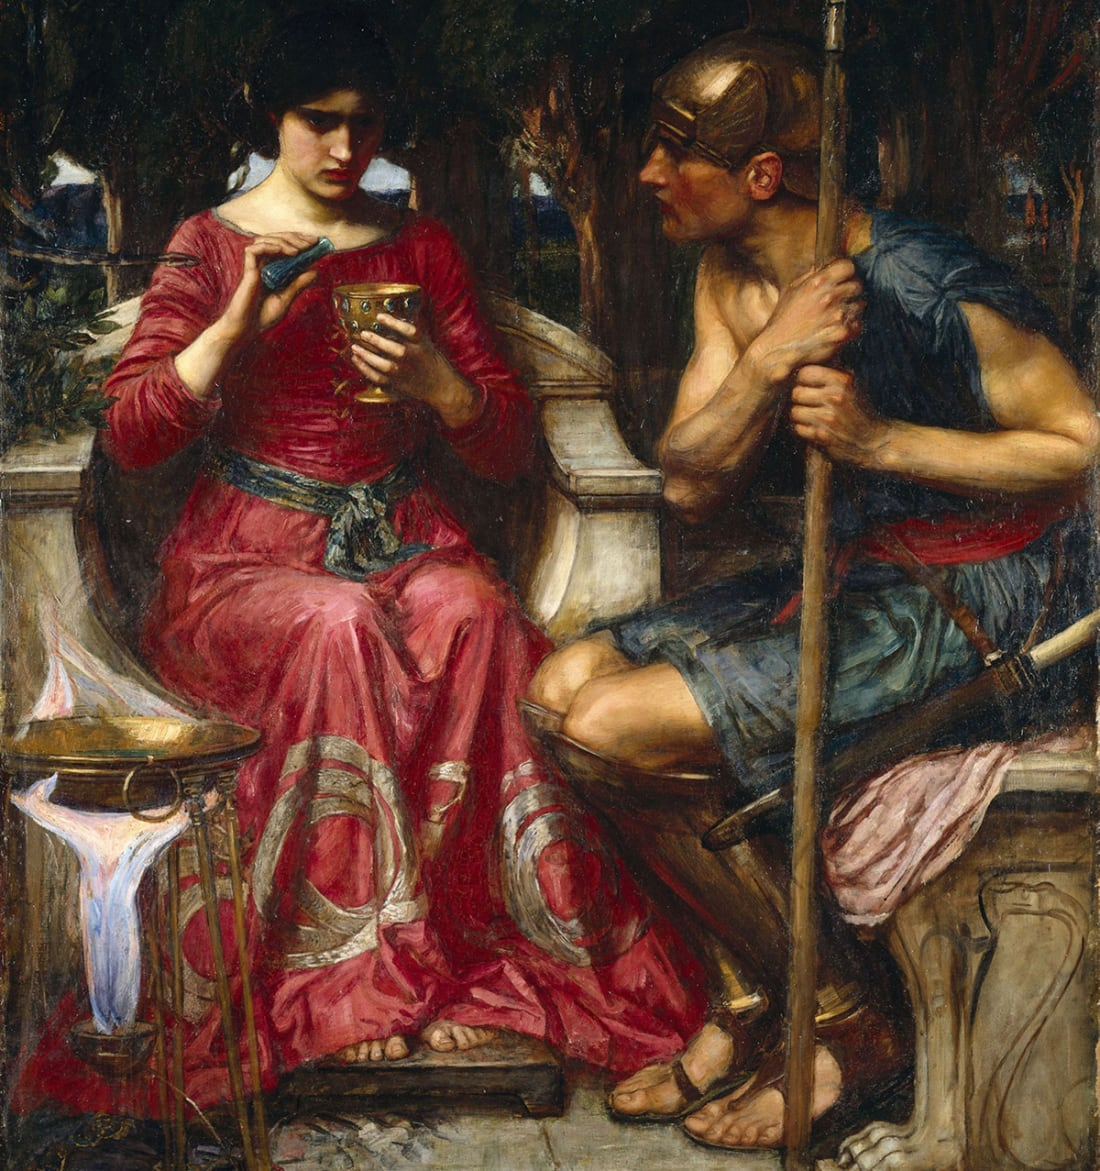 Artwork by John William Waterhouse